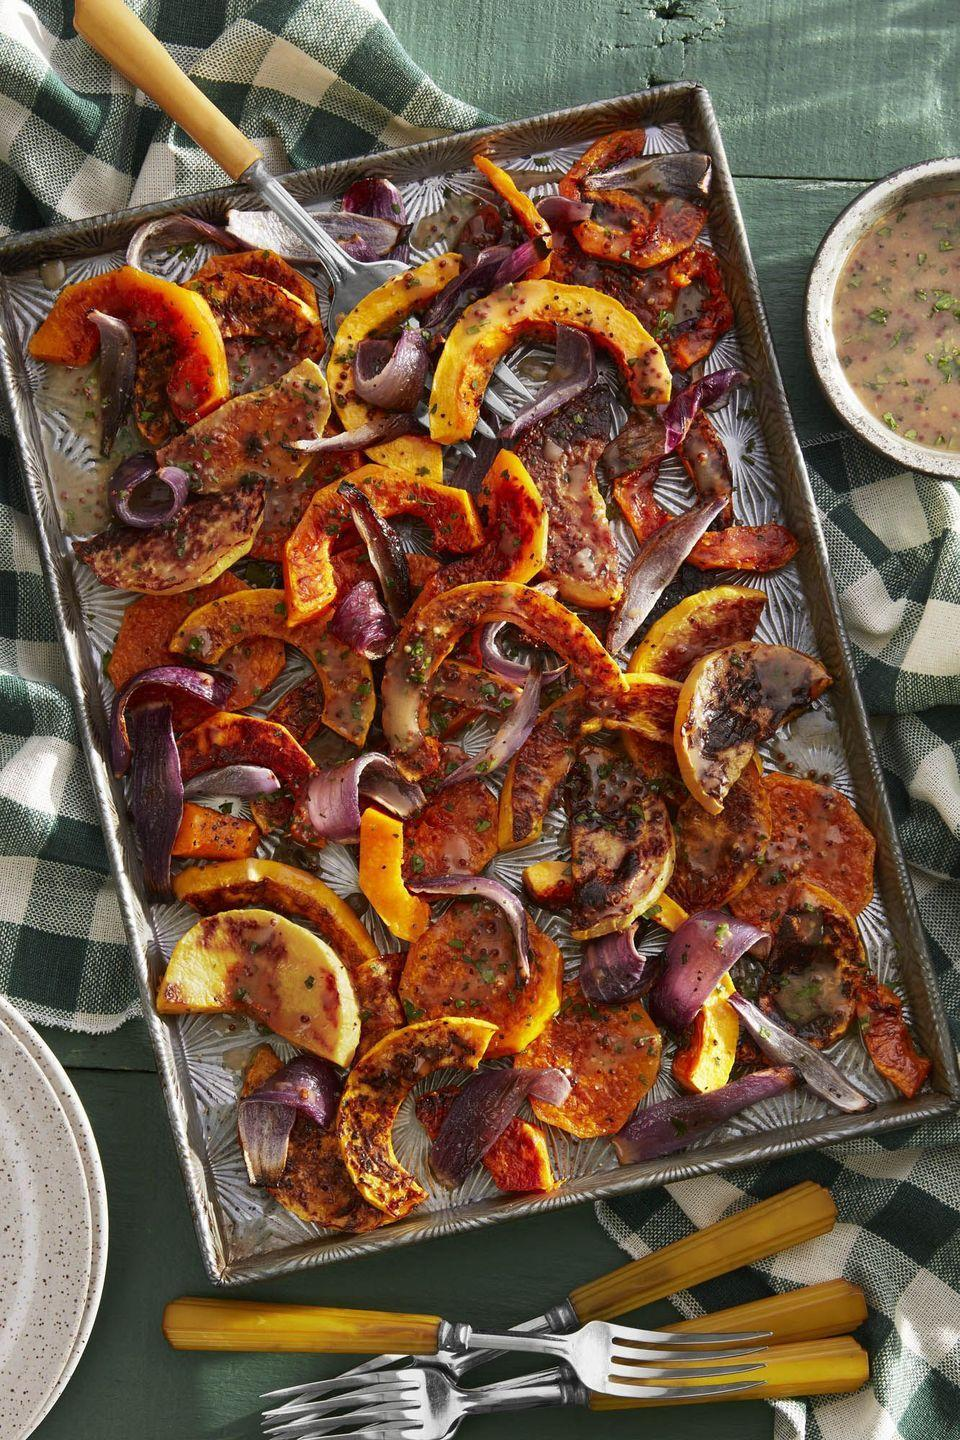 """<p>Apple cider and red onion add extra zippy flavor to this vegan recipe you can make all autumn long.</p><p><strong><a href=""""https://www.countryliving.com/food-drinks/a23367748/roasted-butternut-squash-with-cider-vinaigrette-recipe/"""" rel=""""nofollow noopener"""" target=""""_blank"""" data-ylk=""""slk:Get the recipe"""" class=""""link rapid-noclick-resp"""">Get the recipe</a>.</strong> </p>"""